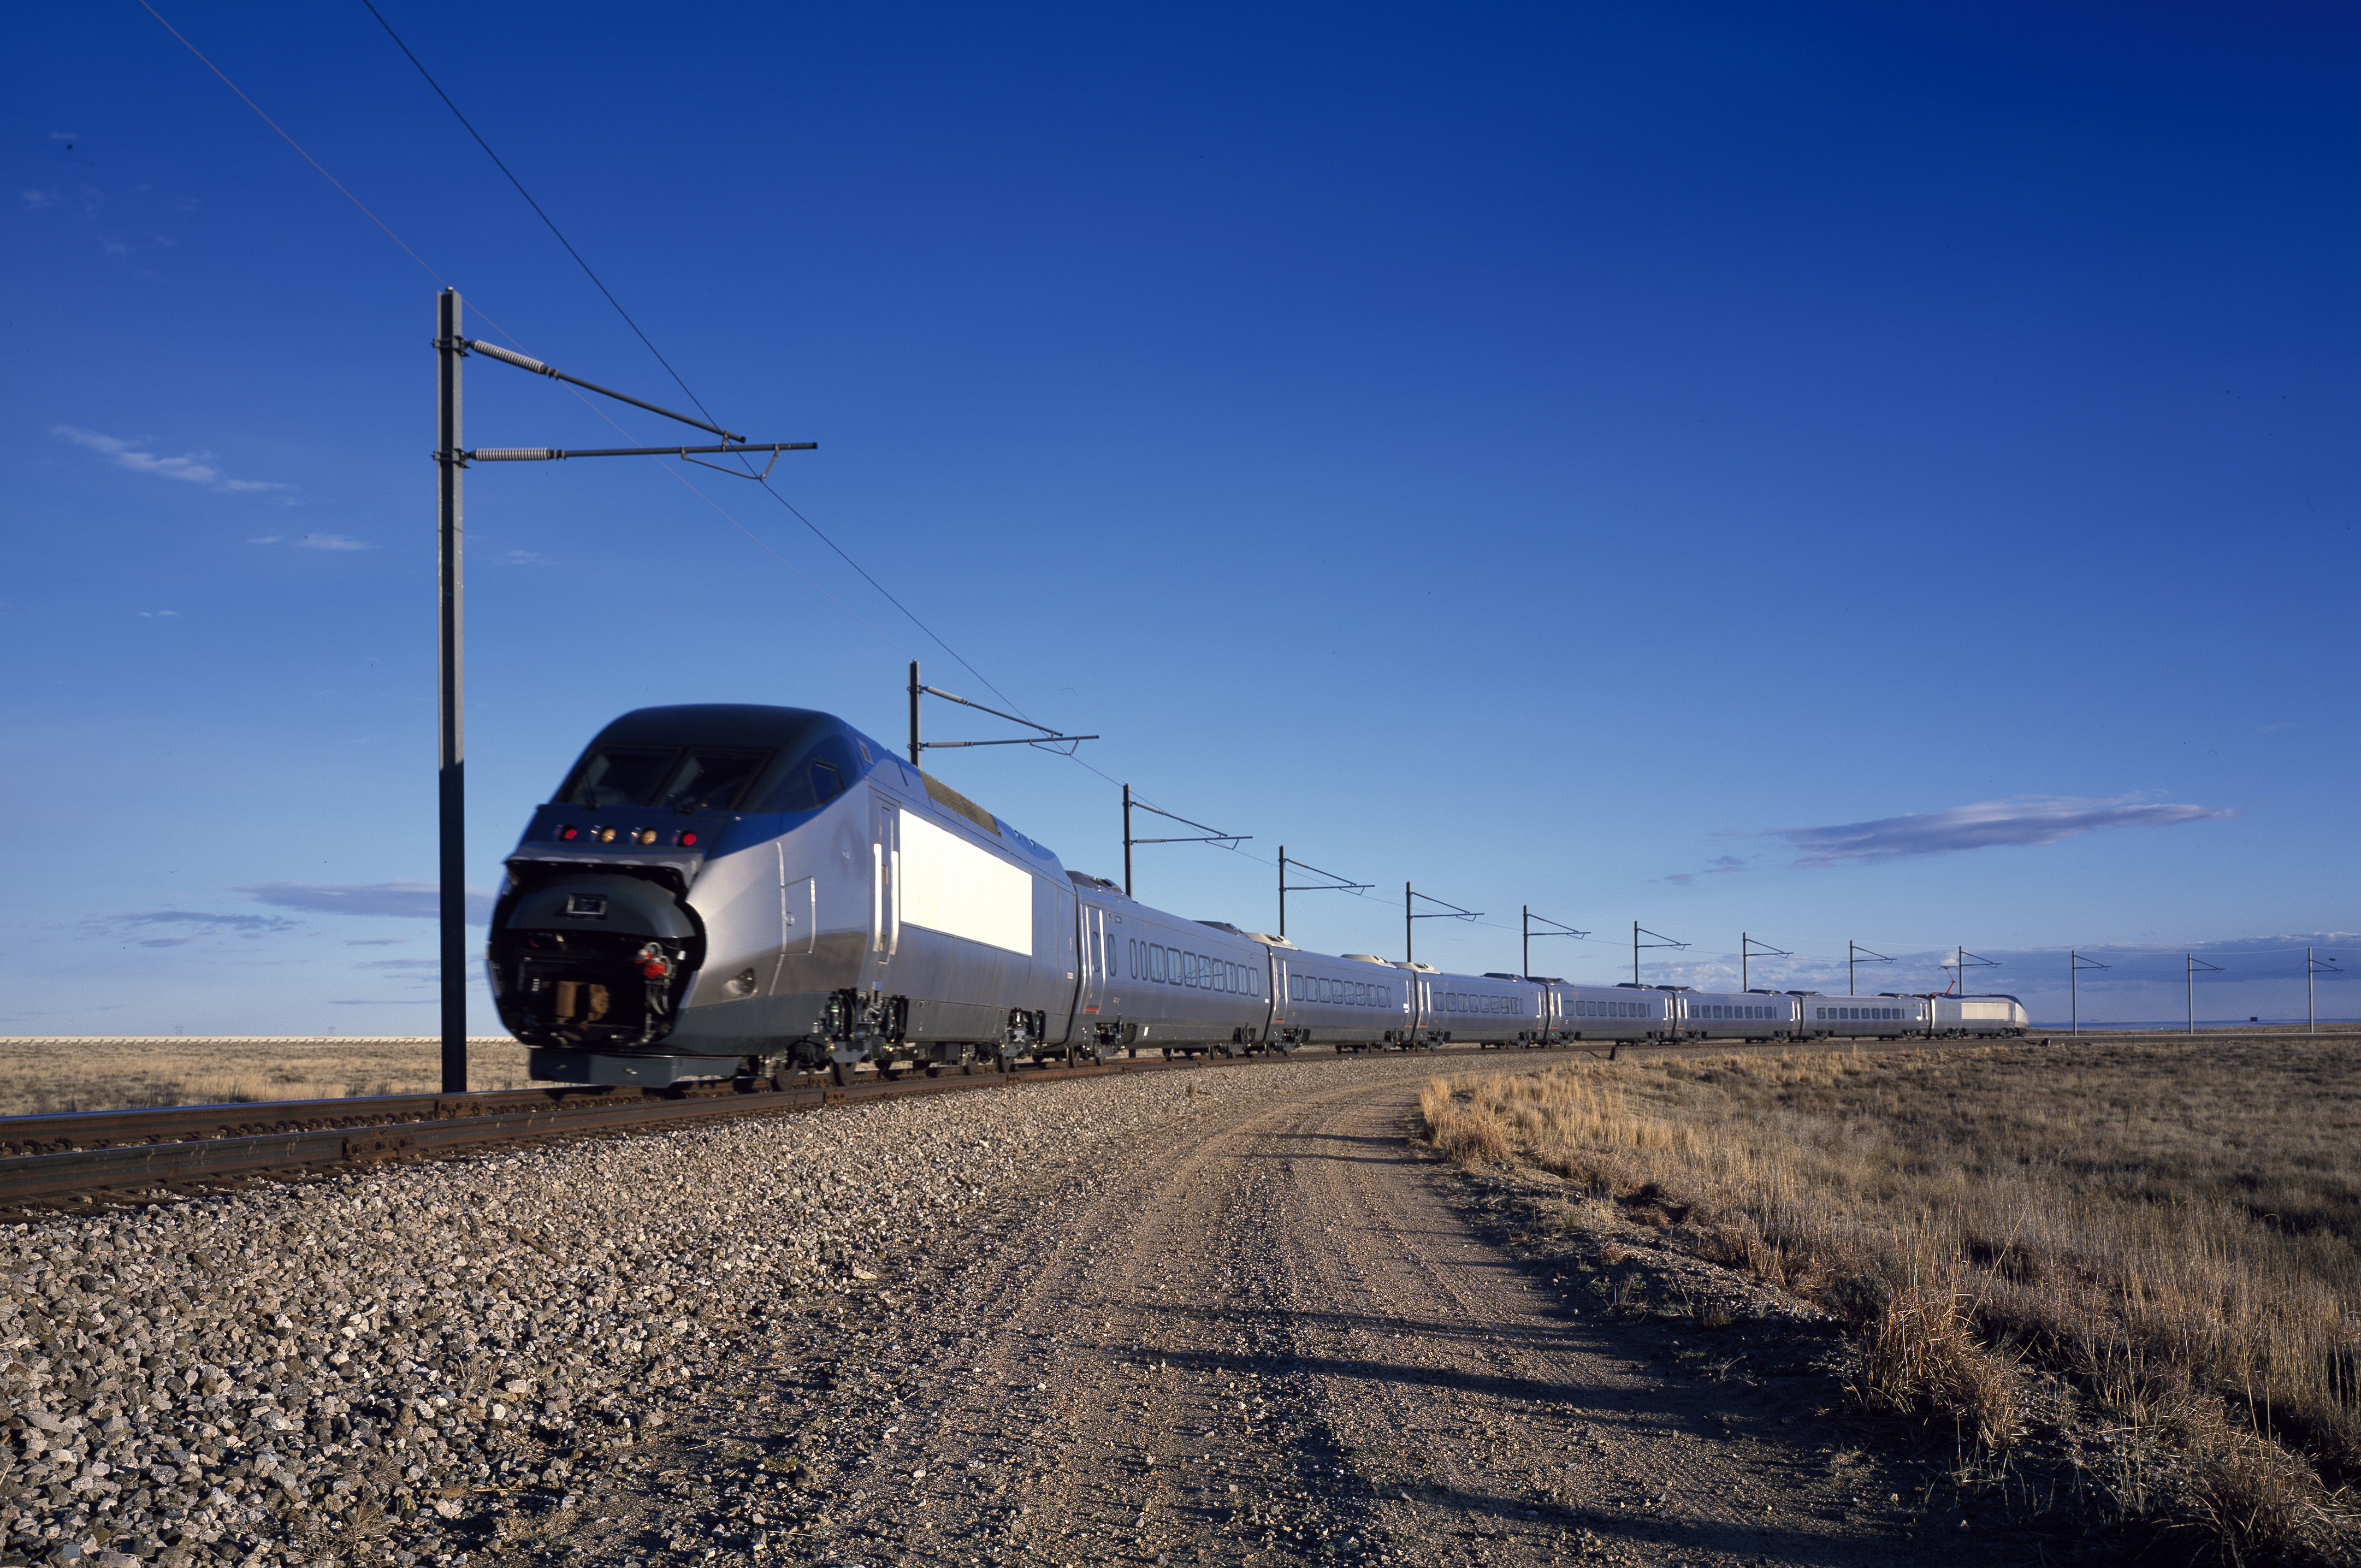 An Amtrak Acela high-speed train is tested in Pueblo, Colo.